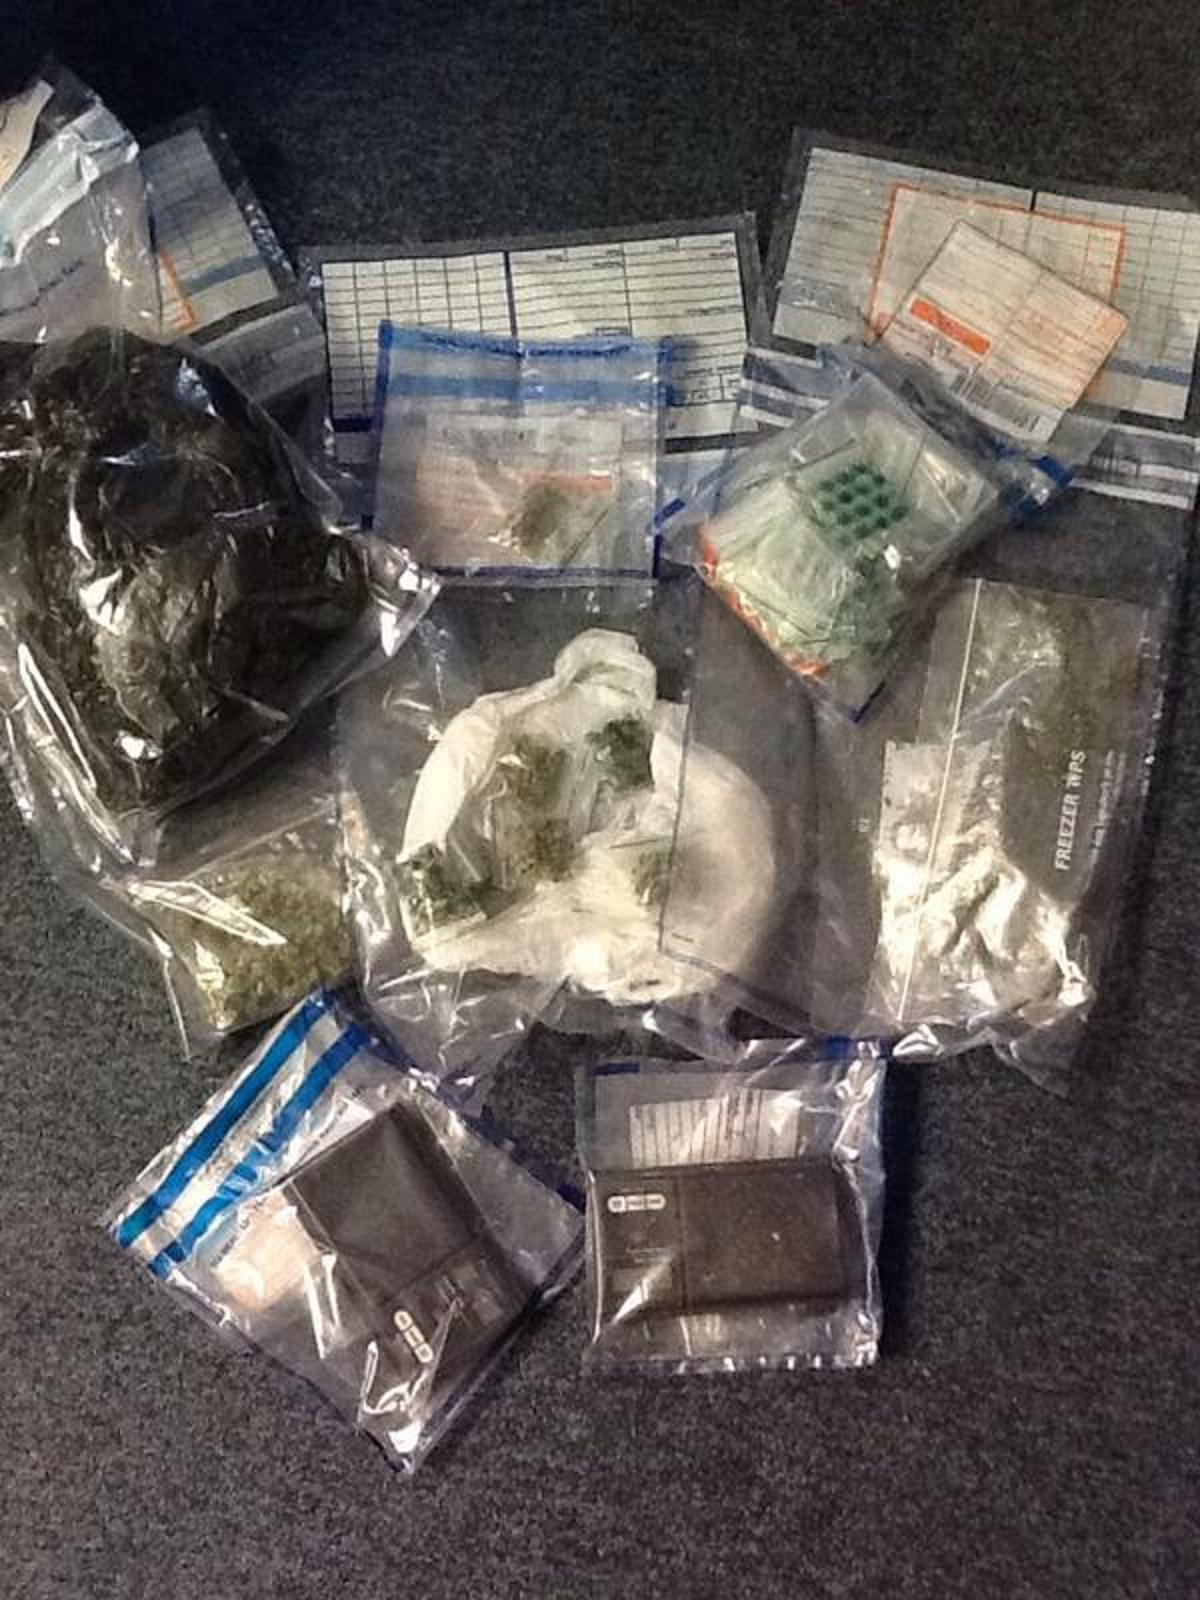 Some of the items seized as part of yesterday's operation